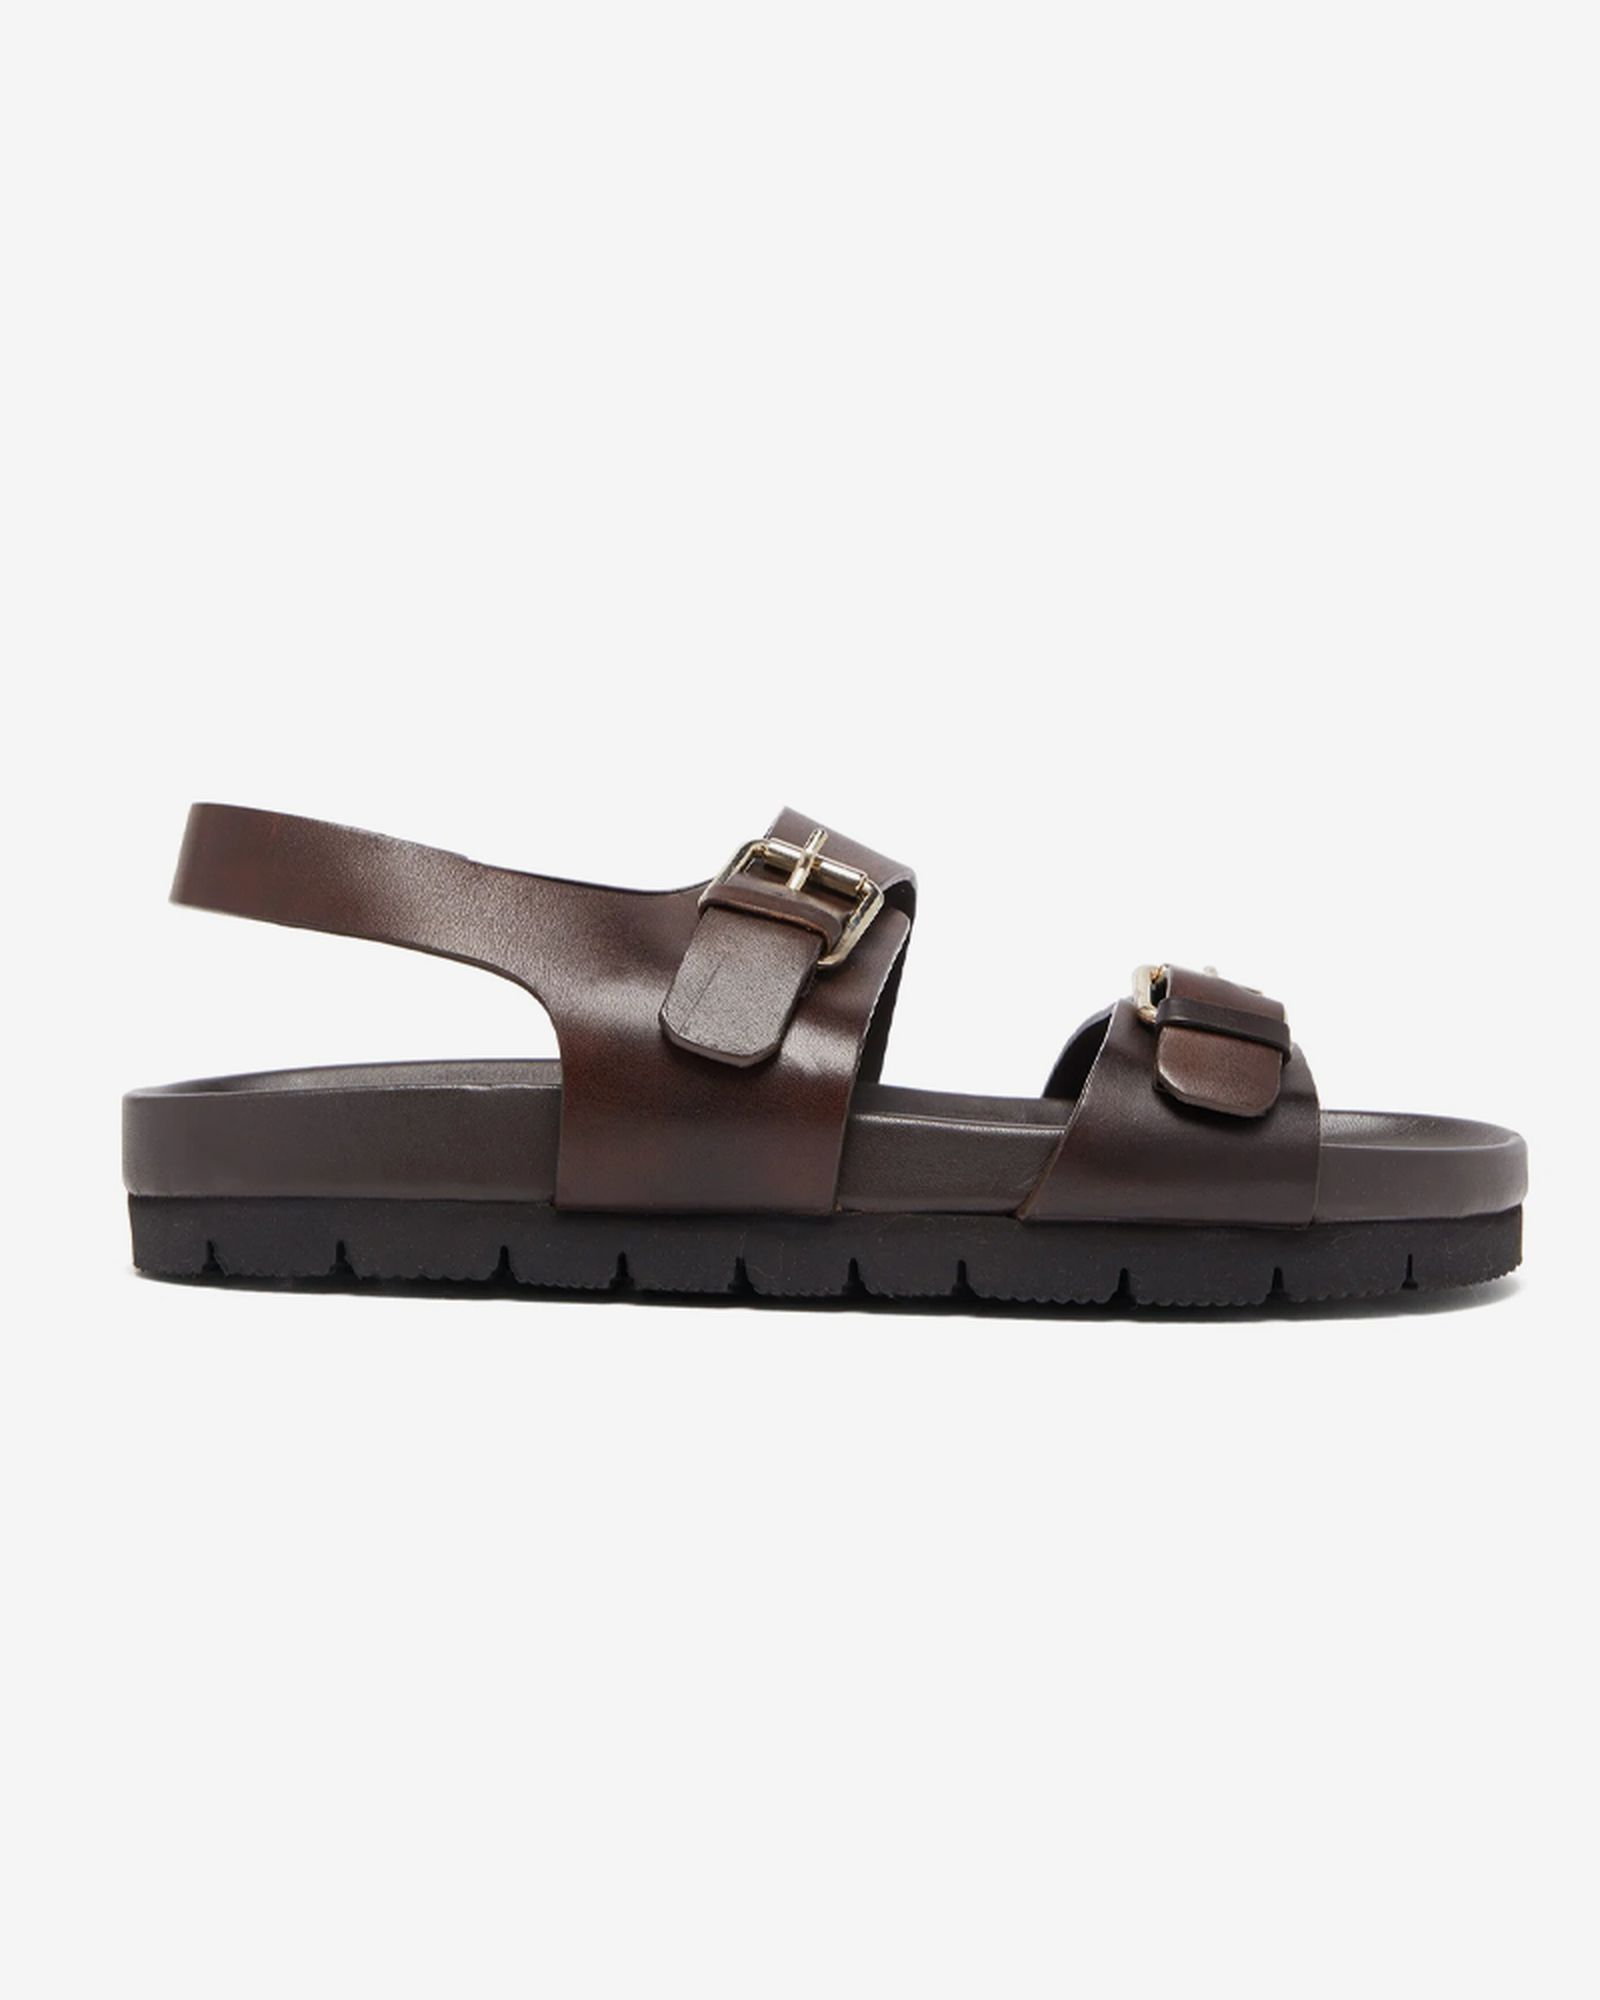 dad-sandals-roundtable-shopping-guide-14